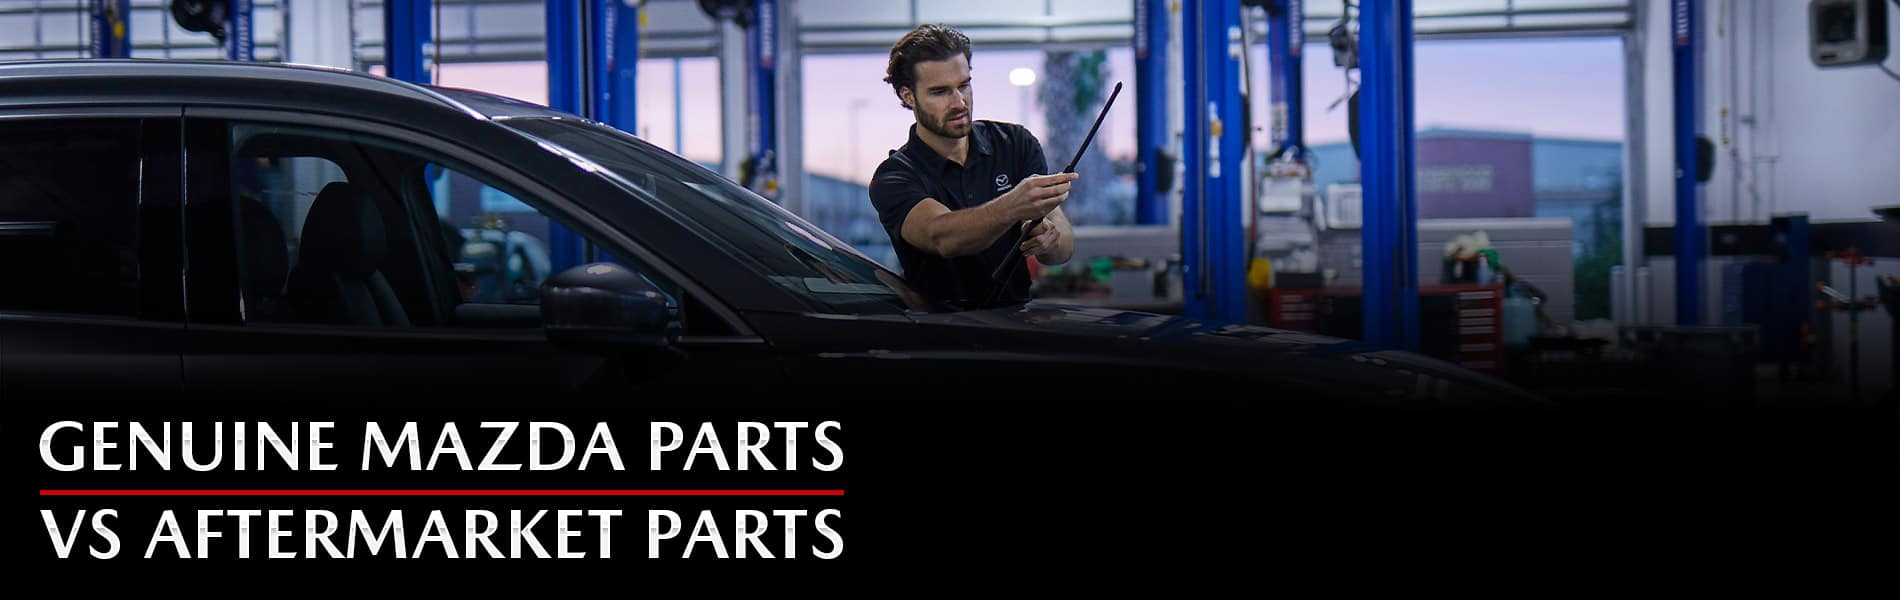 Compare Genuine Mazda Parts to aftermarket parts at Mazda of Bedford in Cleveland, Ohio